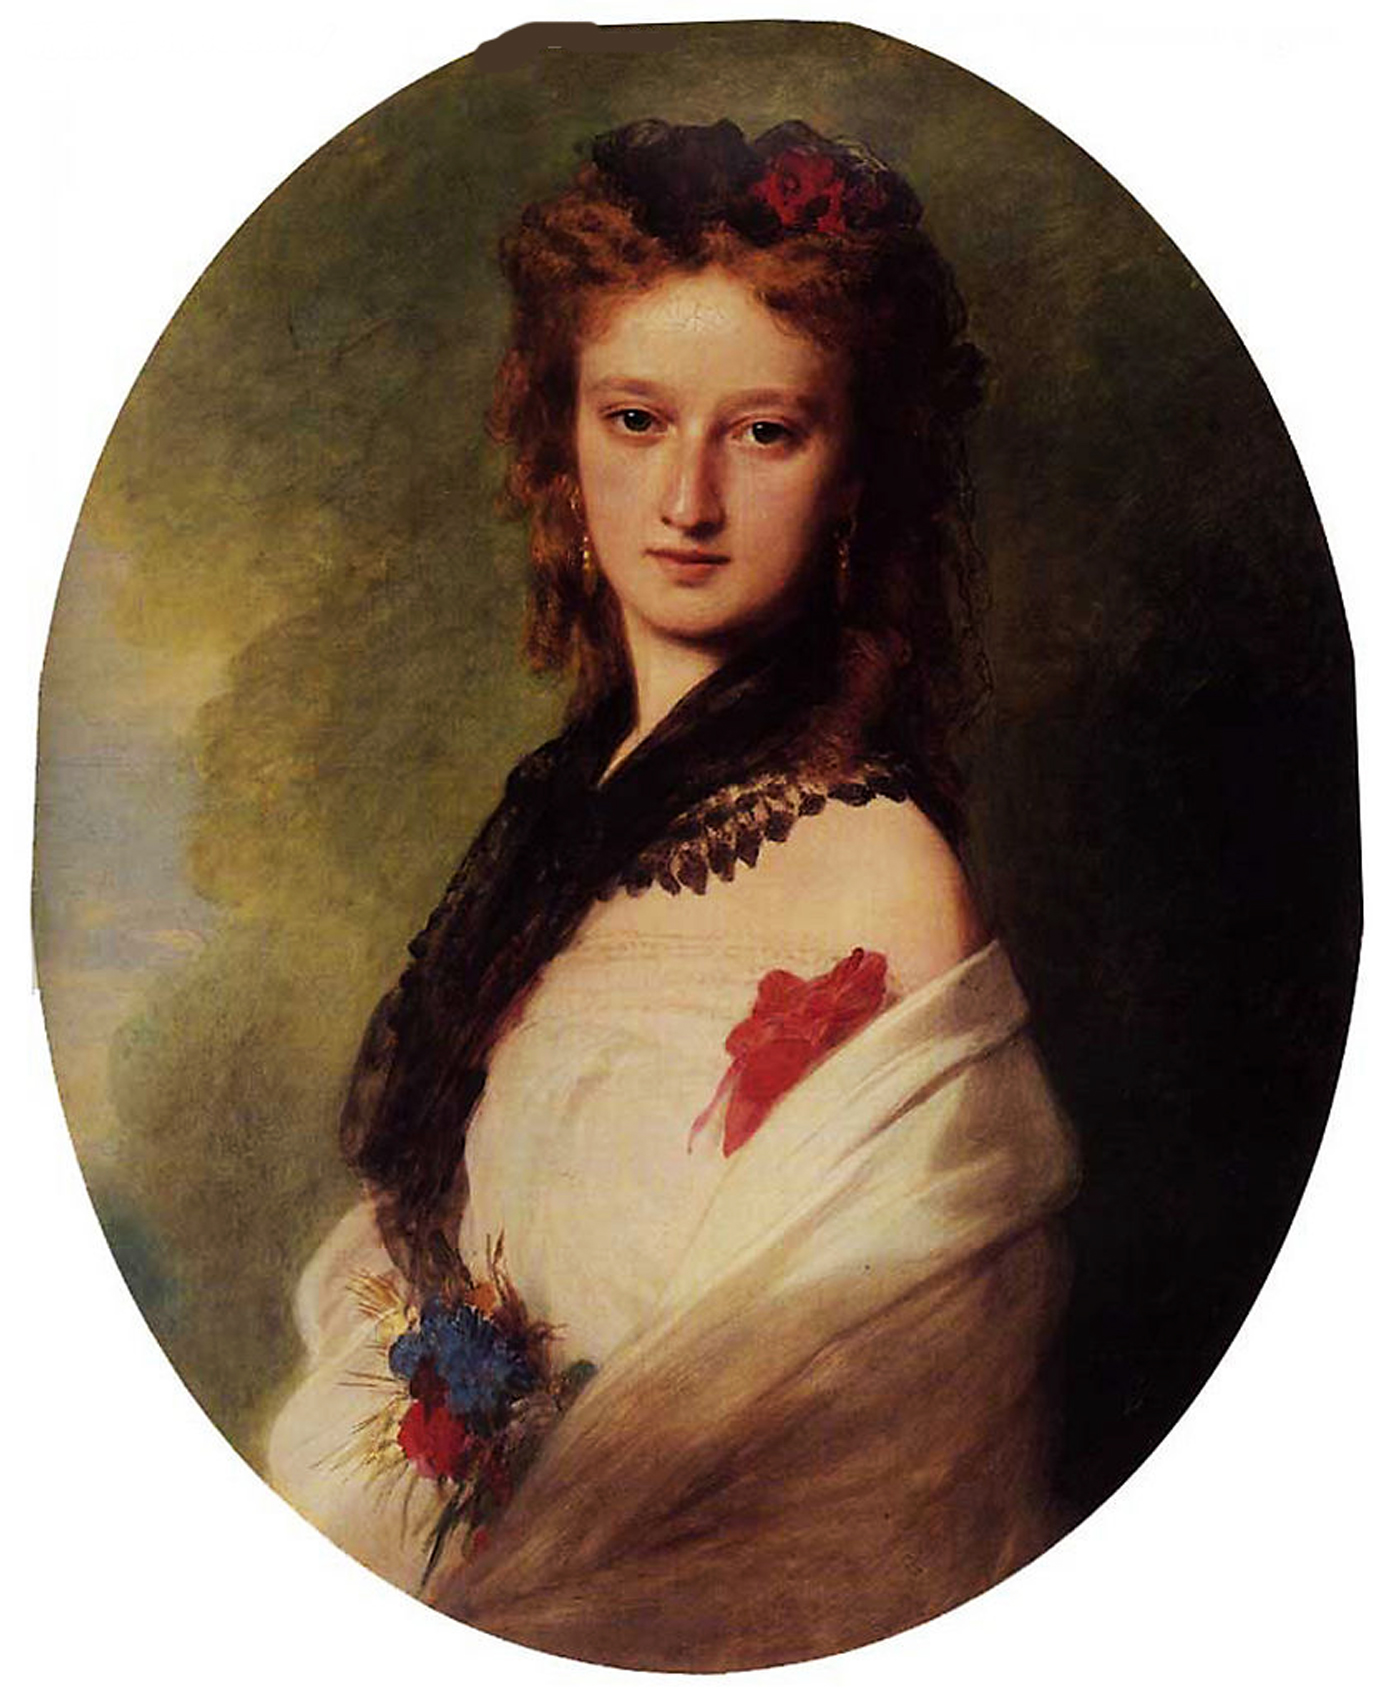 Franz Xavier Winterhalter (1805-1873) Zofia Potocka, Countess Zamoyska Oil on canvas, 1870 Private collection